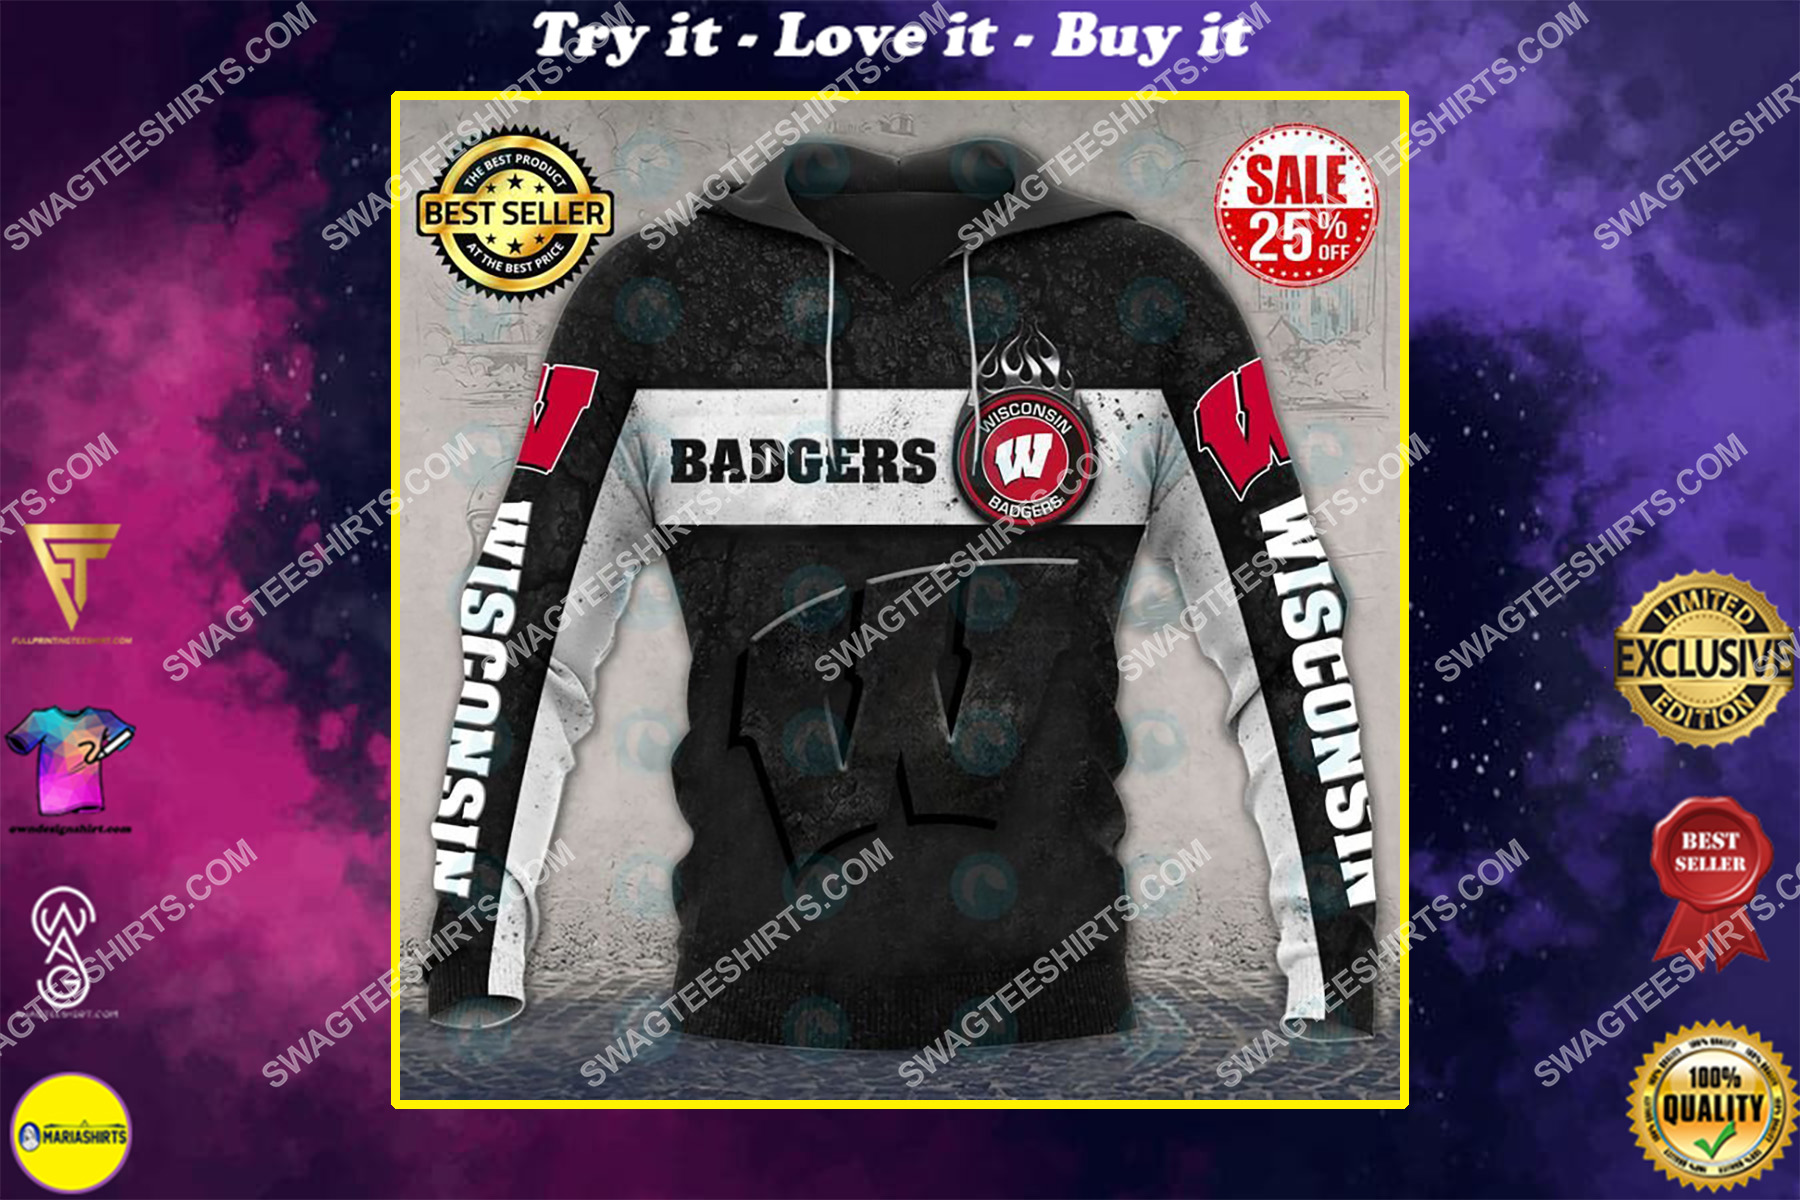 the wisconsin badgers football all over printed shirt